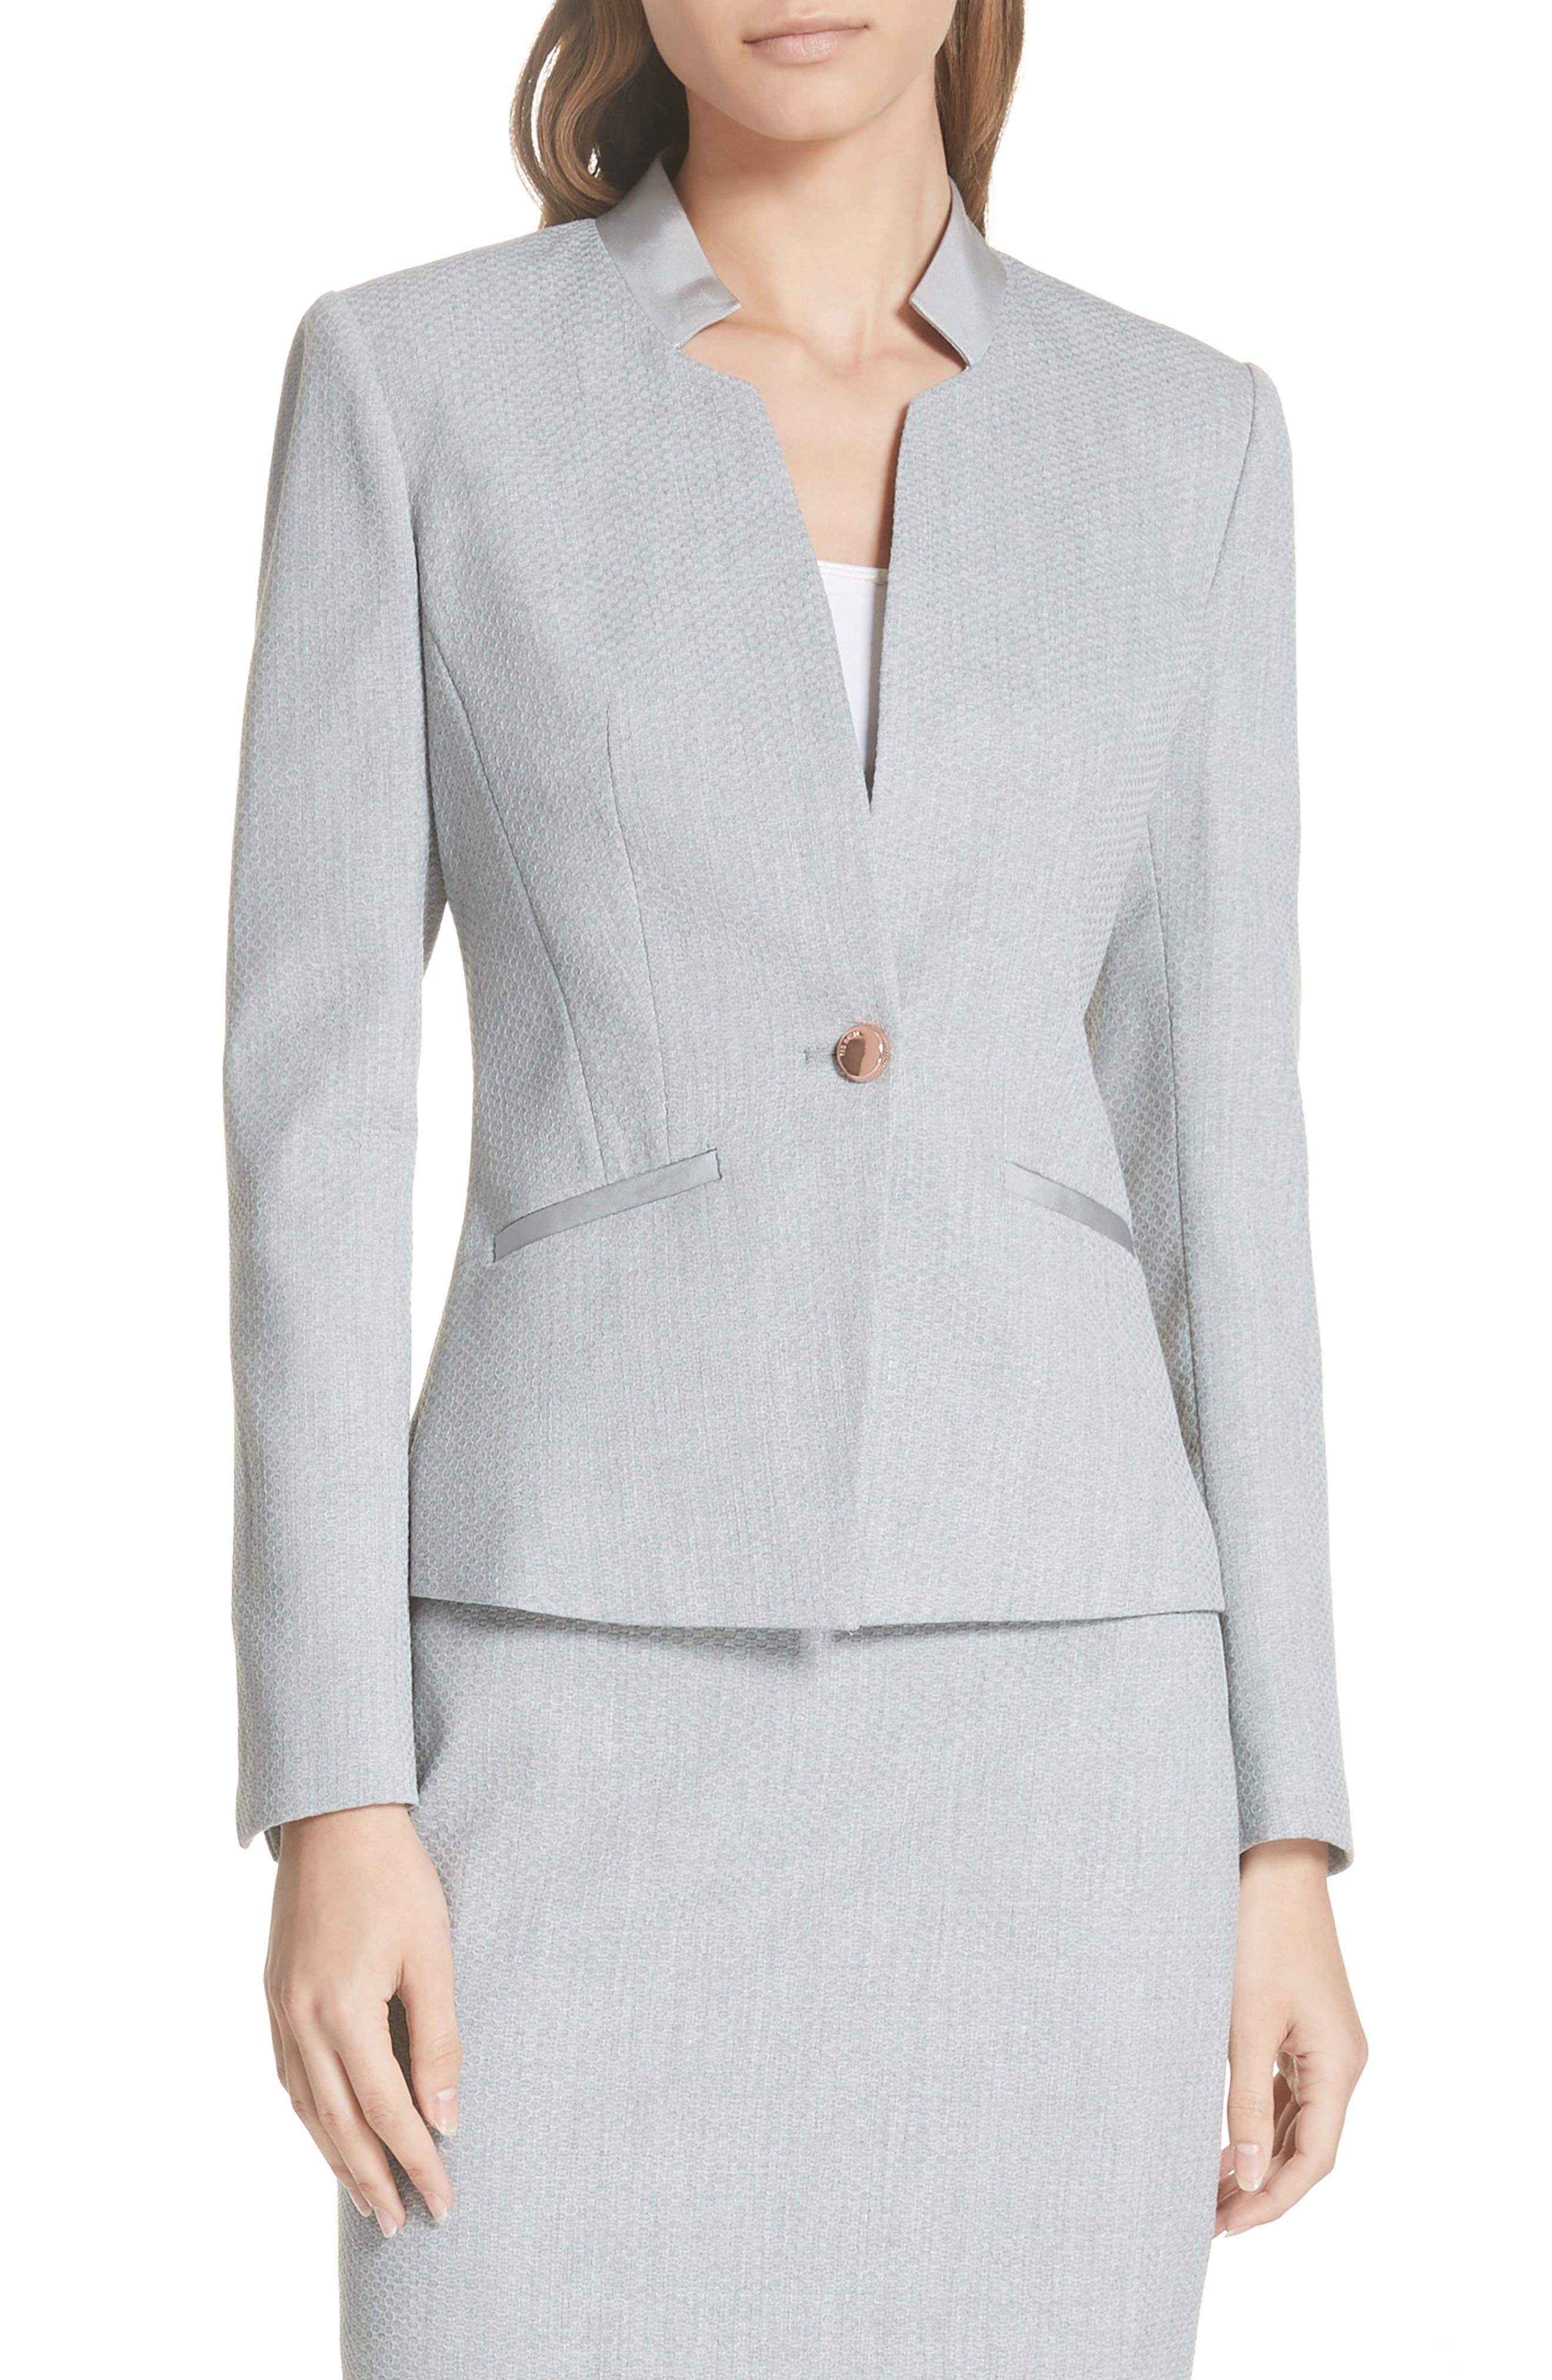 Ted Working Title Daizi Suit Jacket,                         Main,                         color, GREY